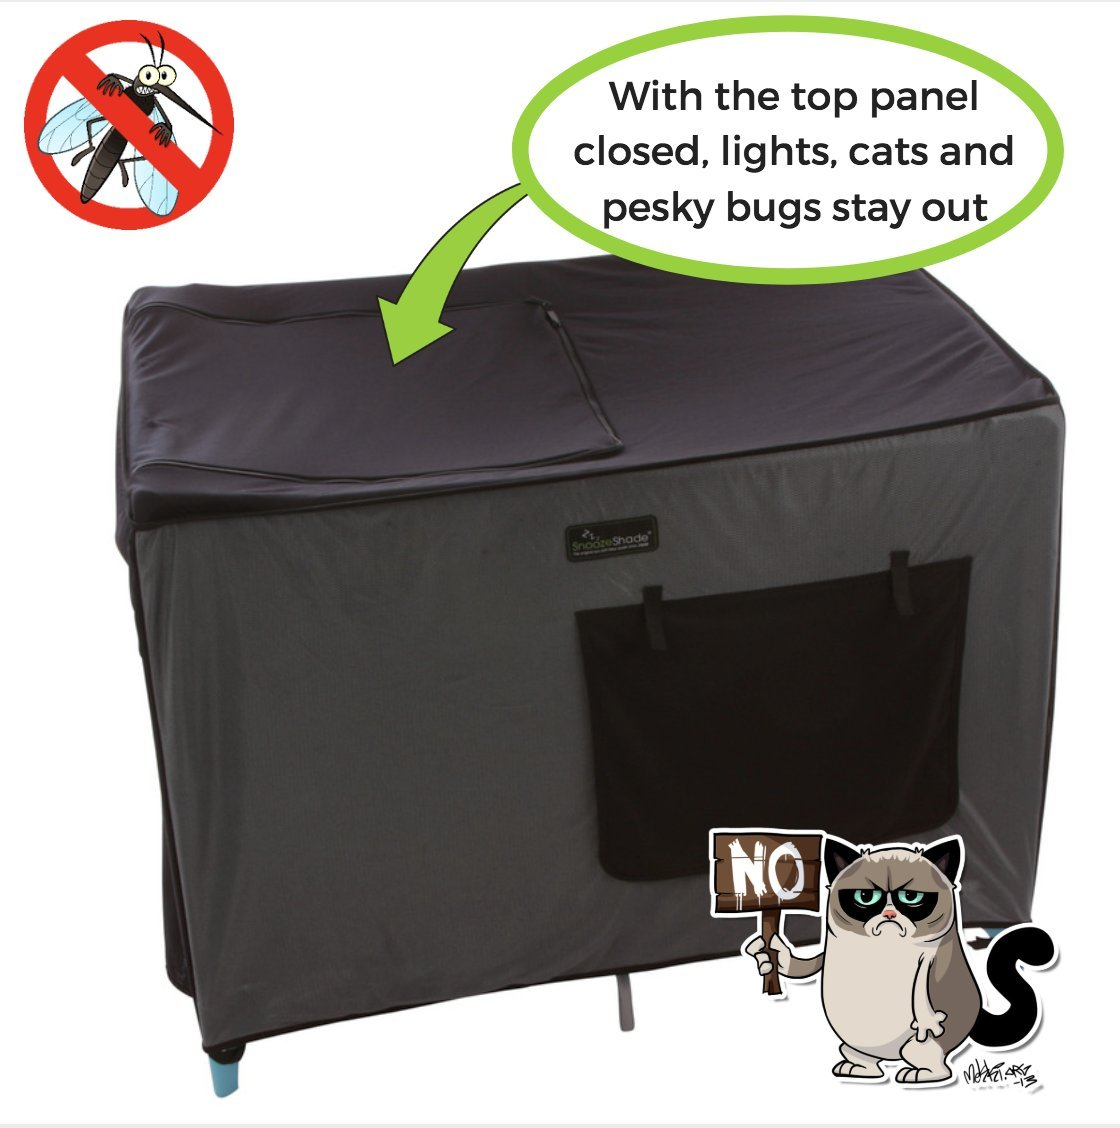 SnoozeShade Portable Blackout Blind and Canopy for Travel Cots SnoozeShade Sharing a room with your baby? There's no need to creep around in the dark (we've all done it). Let SnoozeShade make it easy. Keep the lights on without worrying about waking your little one. Invented by a British mum, it creates a comfortable darkened environment to help babies switch off and sleep in strange surroundings. Great for hotels, family visits, camping or any time you need baby to nap in the travel cot. So simple to use and easy to travel with. Just pop it over the travel cot, attach the bottom straps and you're done! Lightweight and no complicated attachments. 2